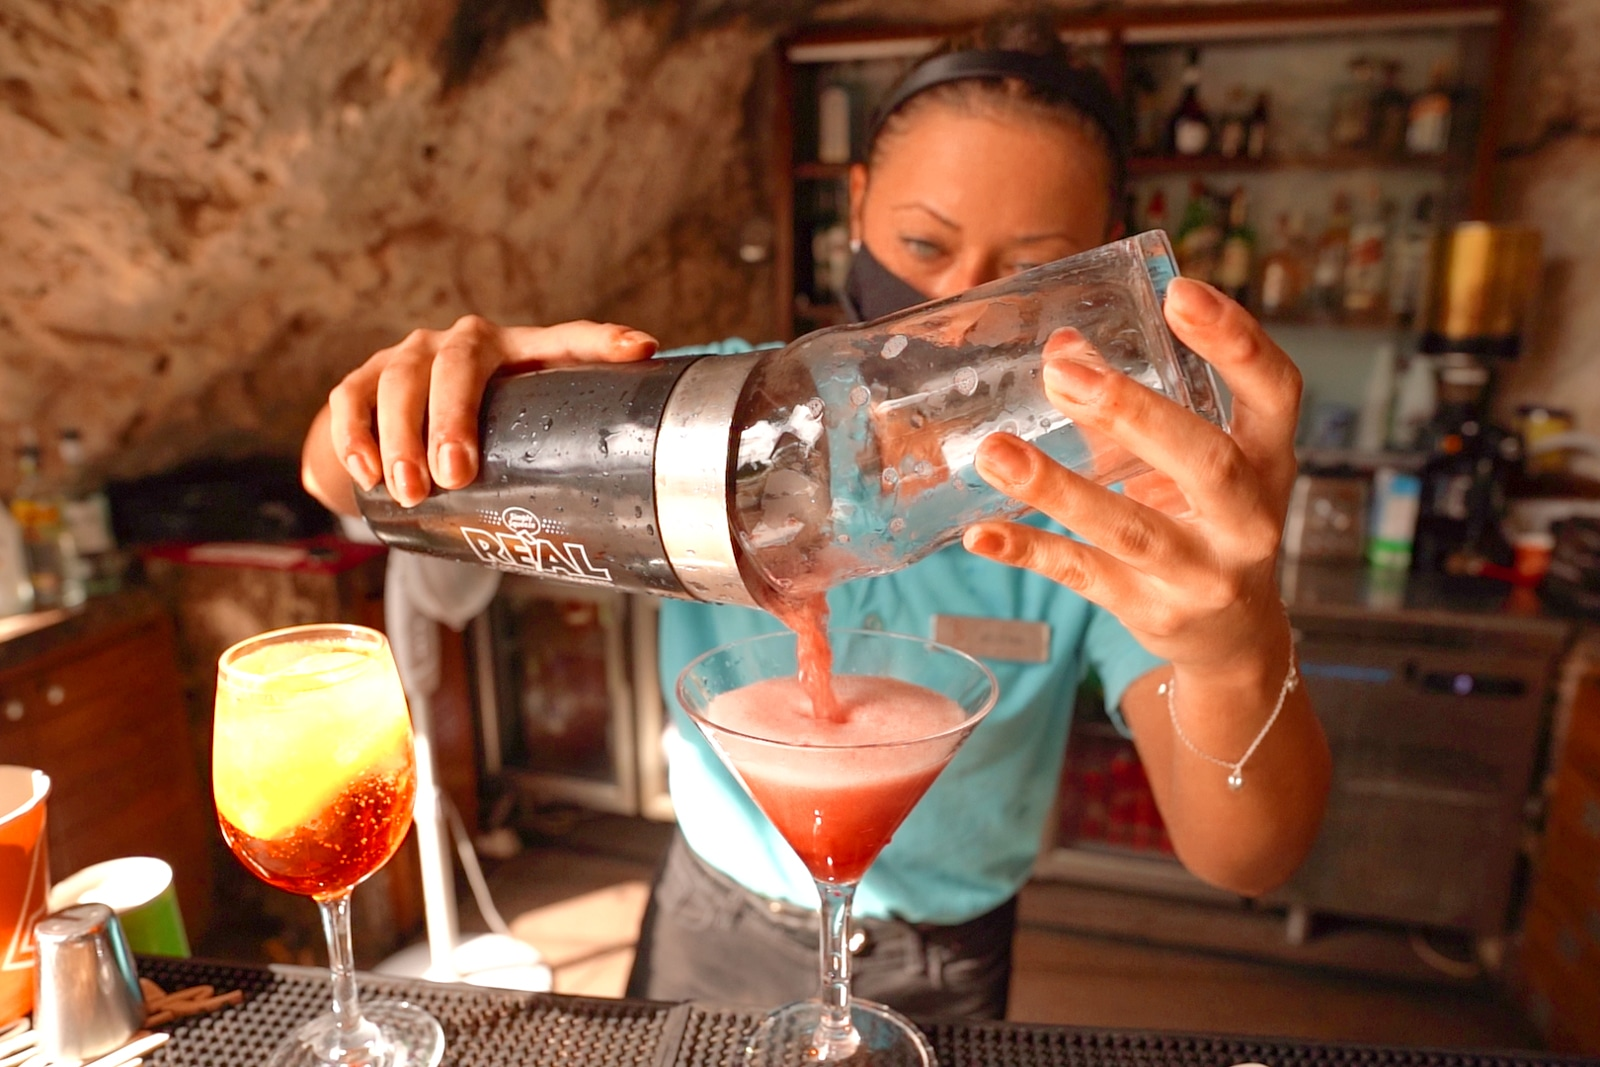 Woman pouring red cocktail into glass